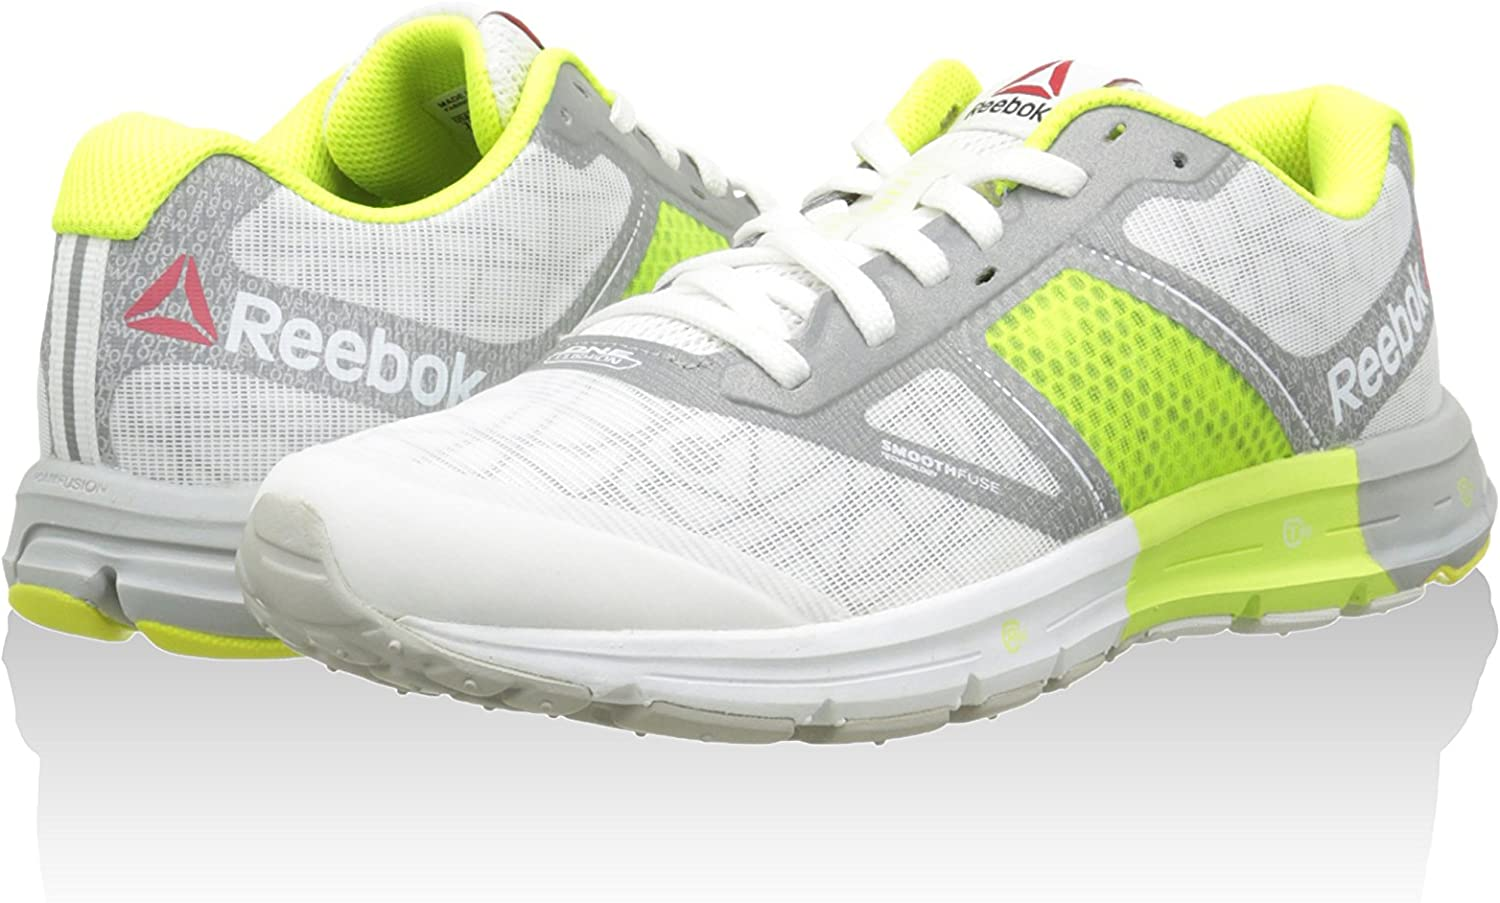 Reebok Zapatillas One Cushion 2.0 Cit Hielo/Lima EU 41: Amazon.es ...